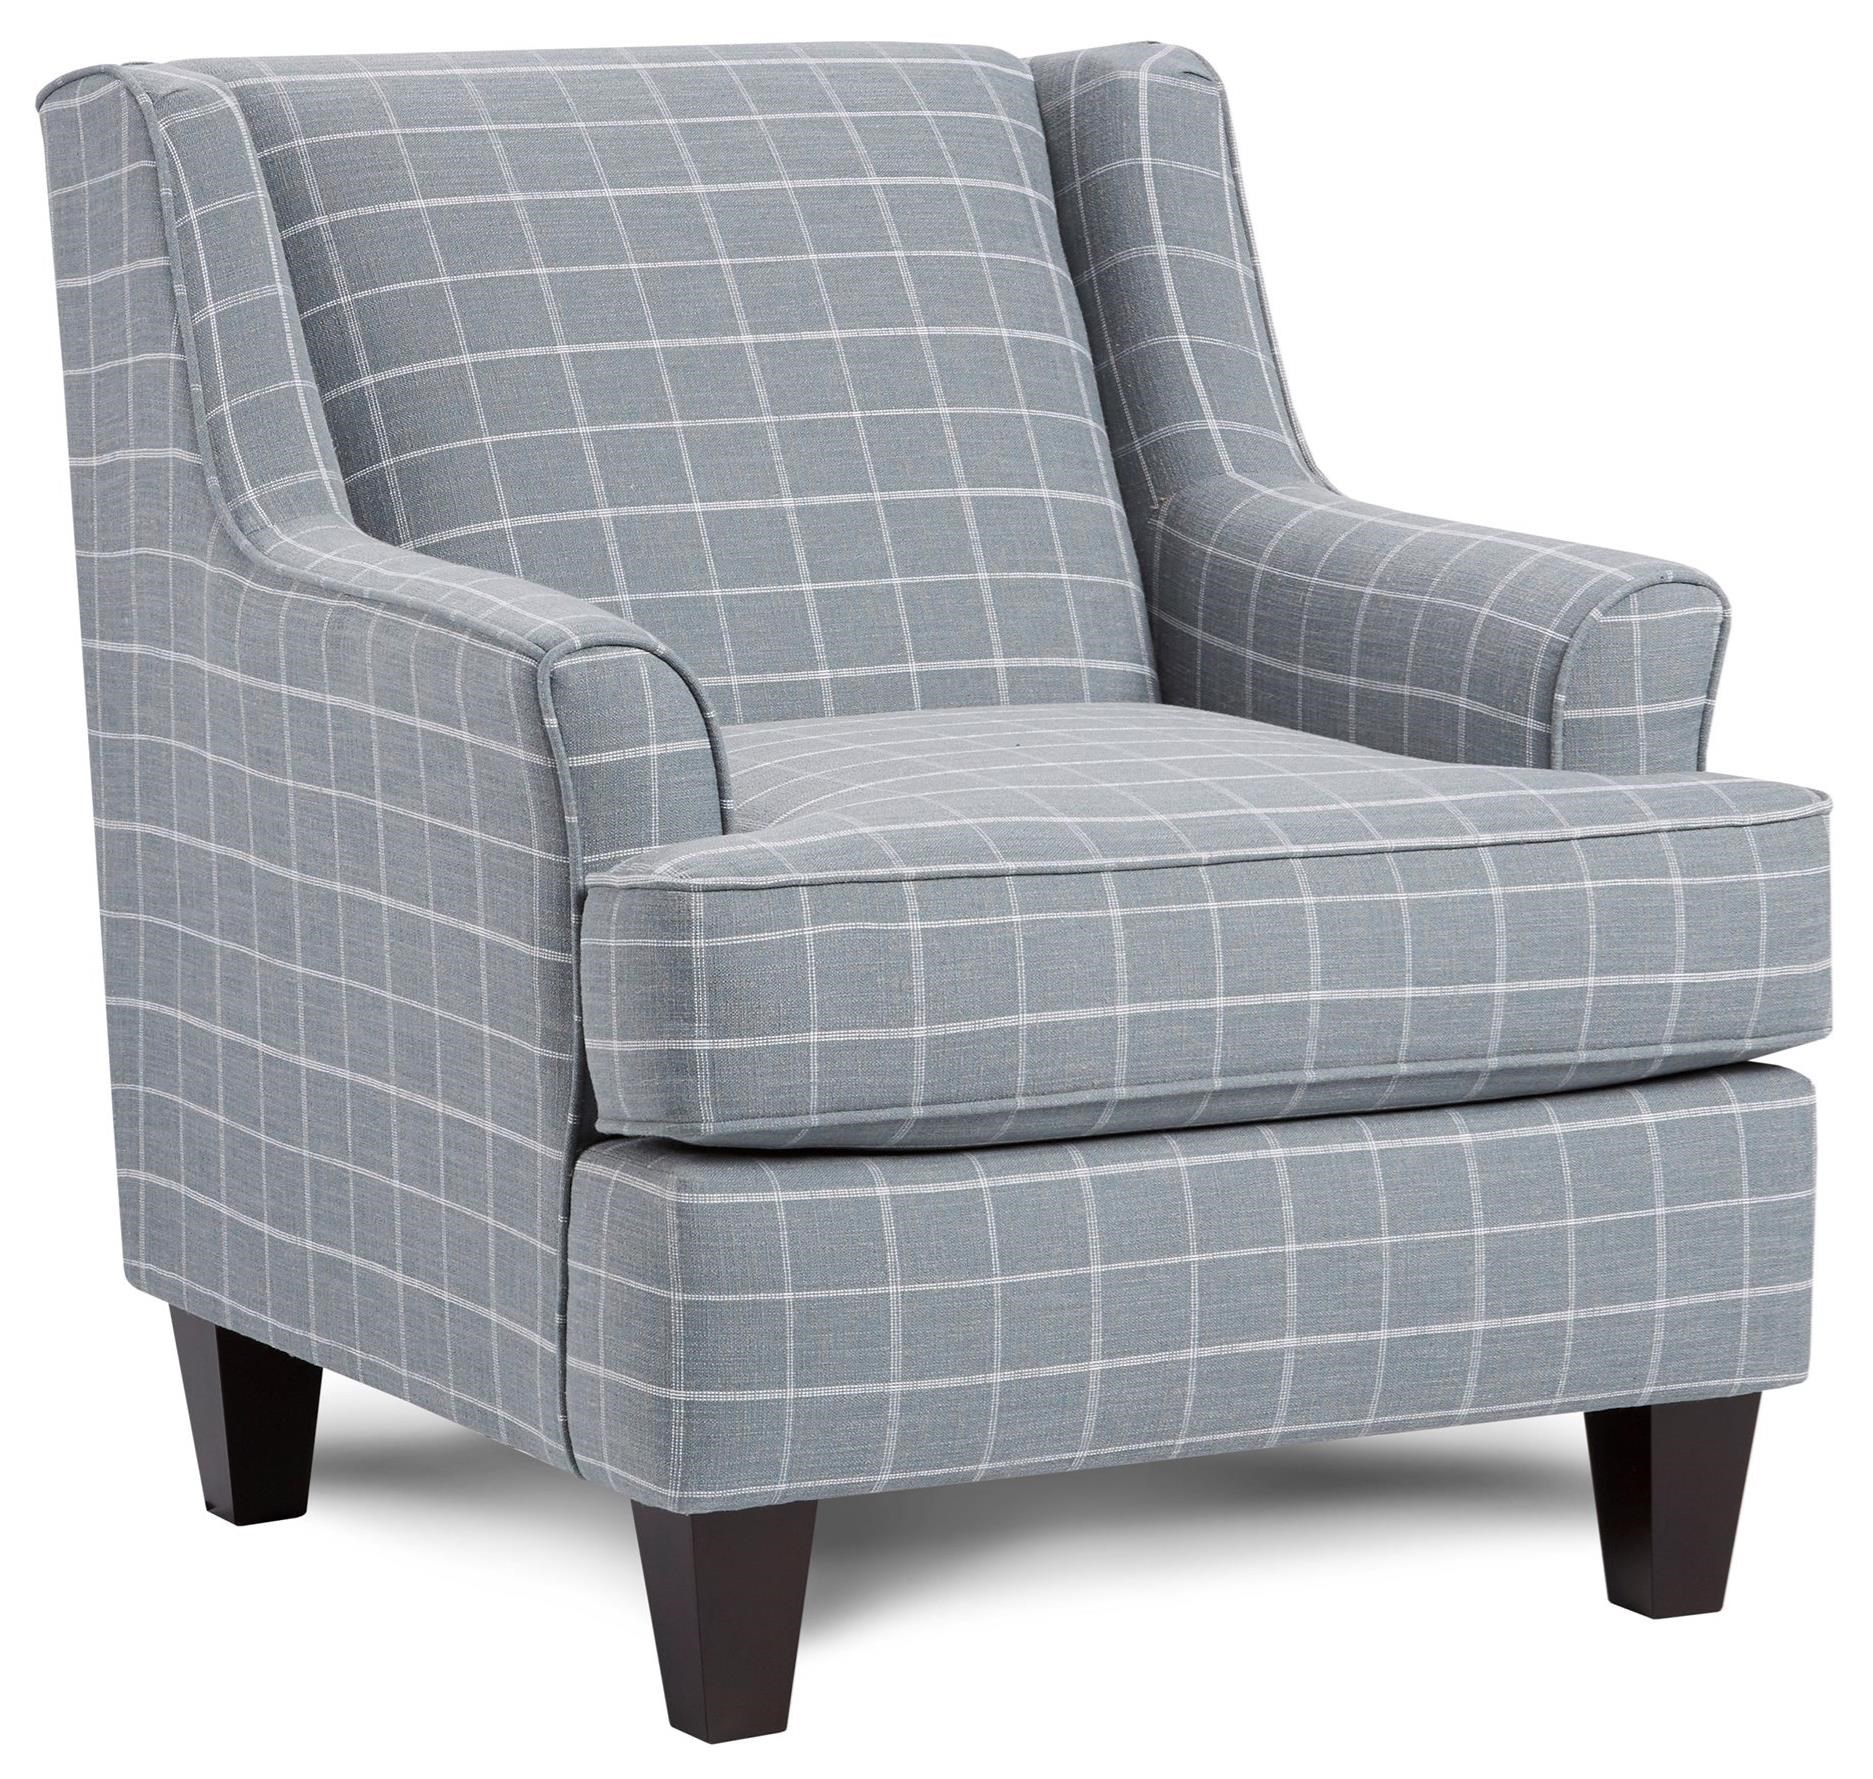 340 Upholstered Chair by FN at Lindy's Furniture Company